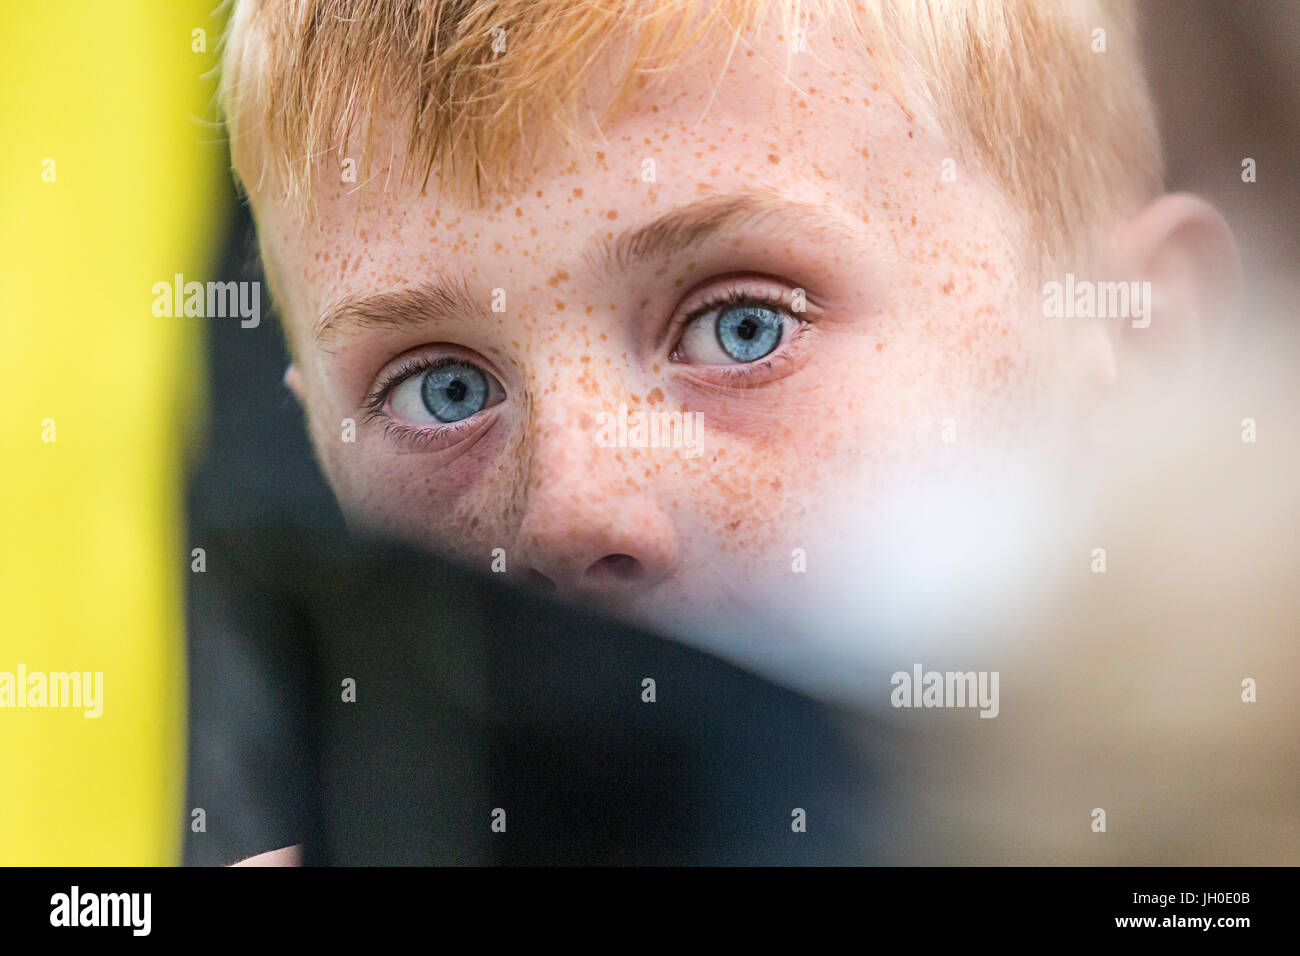 Young blue-eyed boy tries to fool the photographer by hiding behind objects - Stock Image